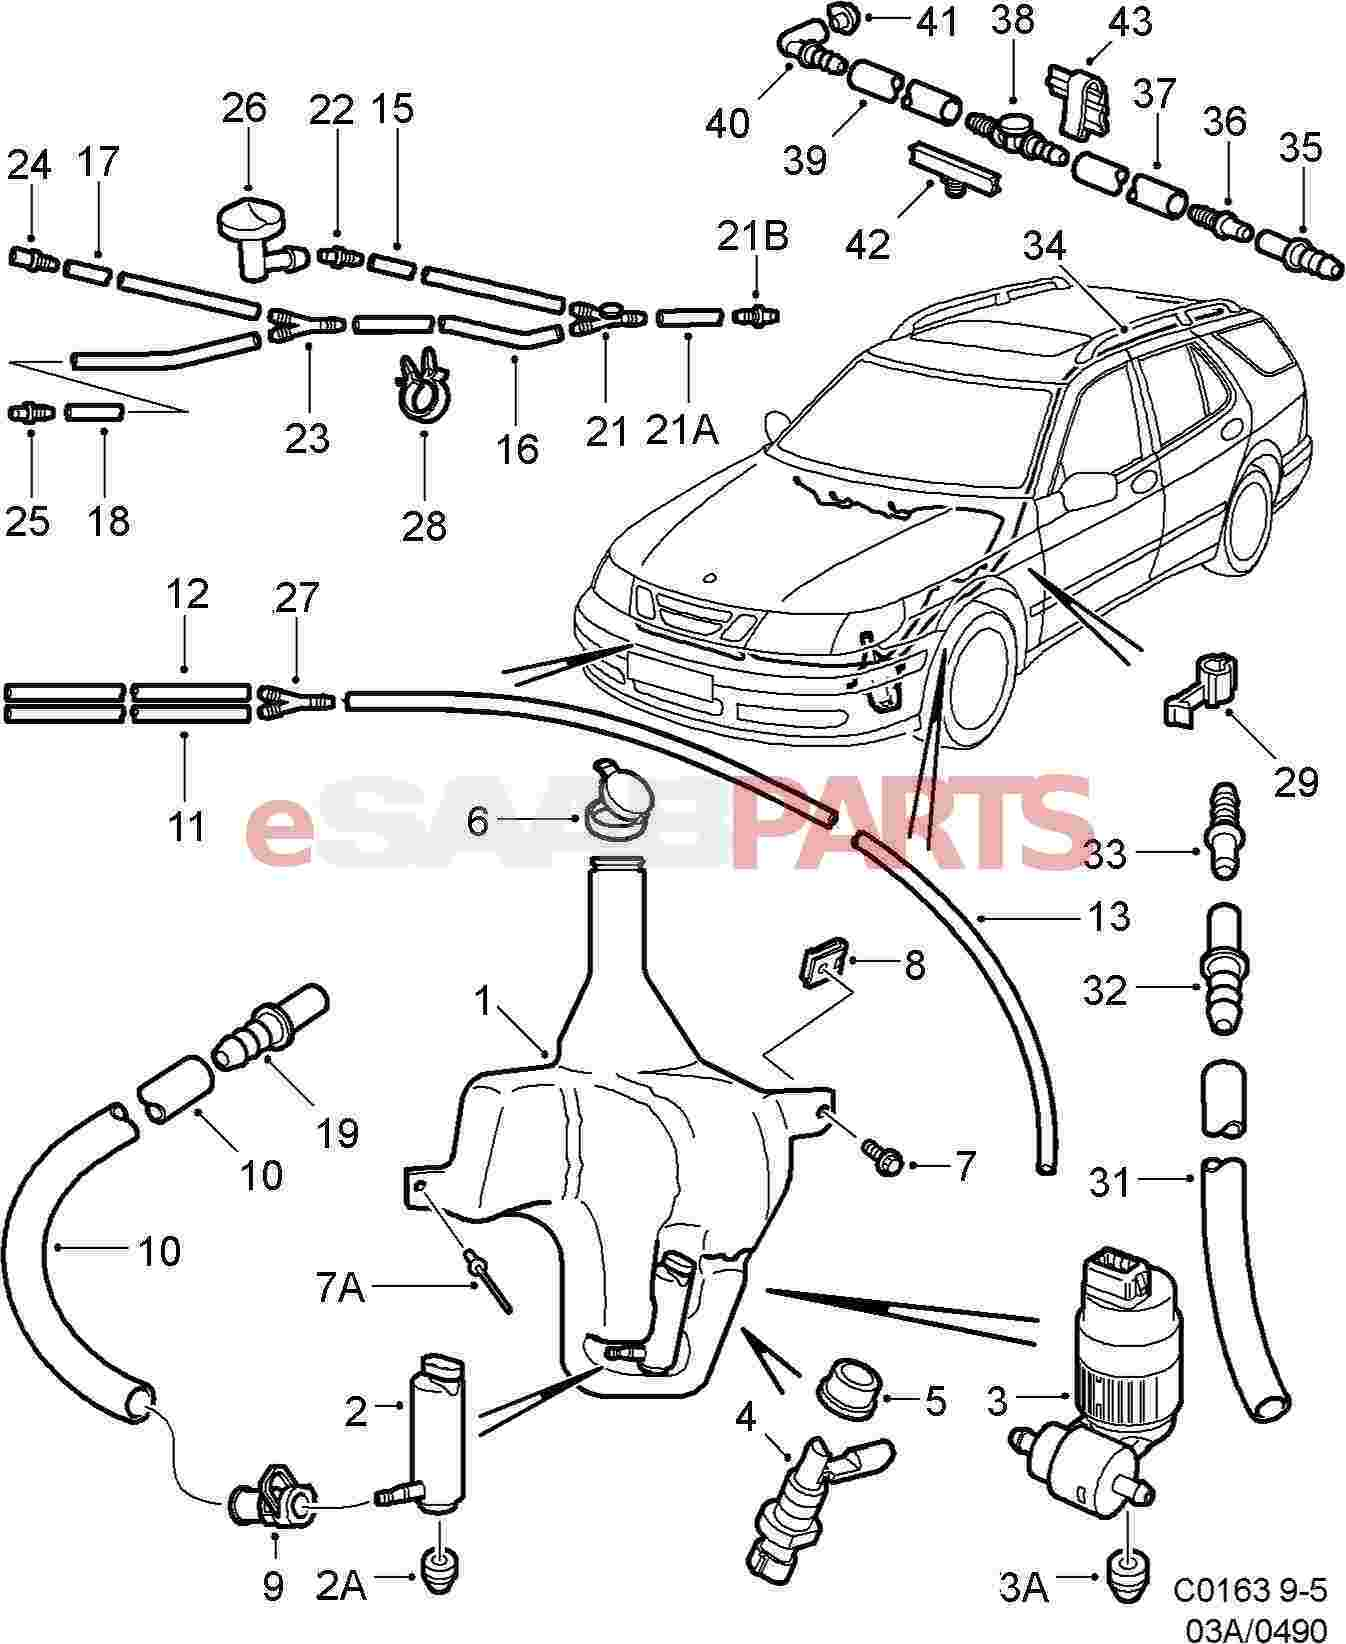 12787618 saab snap on coupling genuine saab parts from esaabparts com rh esaabparts com 2005 Saab 9-3 1999 Saab 9-3